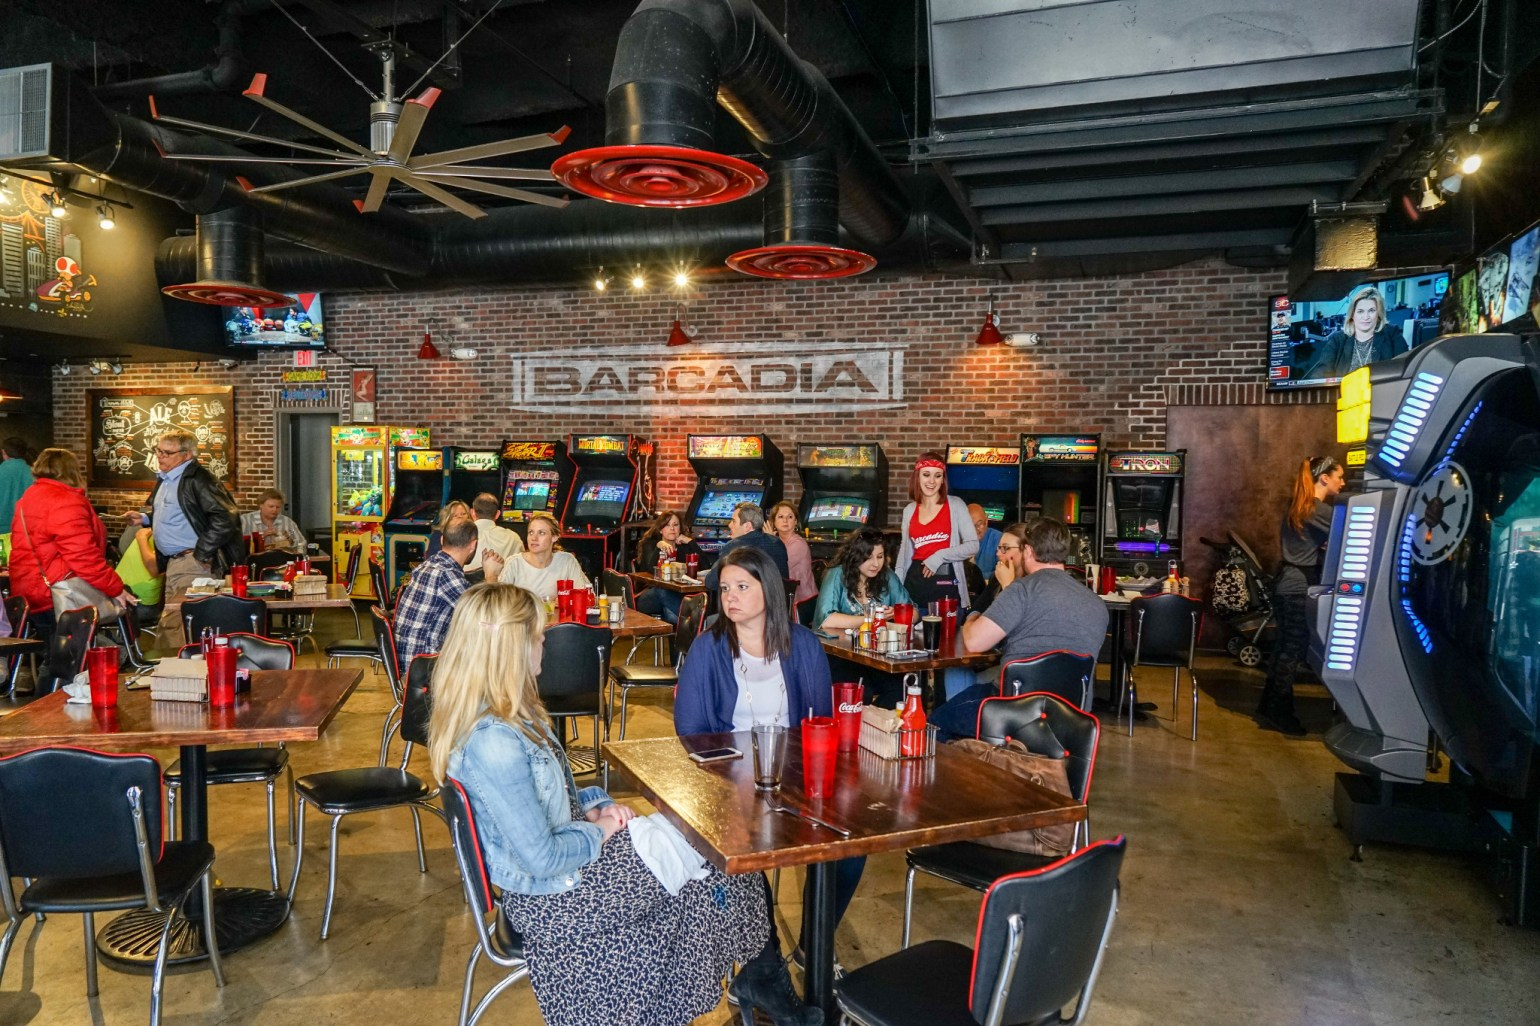 Barcadia is a bar and arcade all rolled into one. (Photo: Paul Broussard)